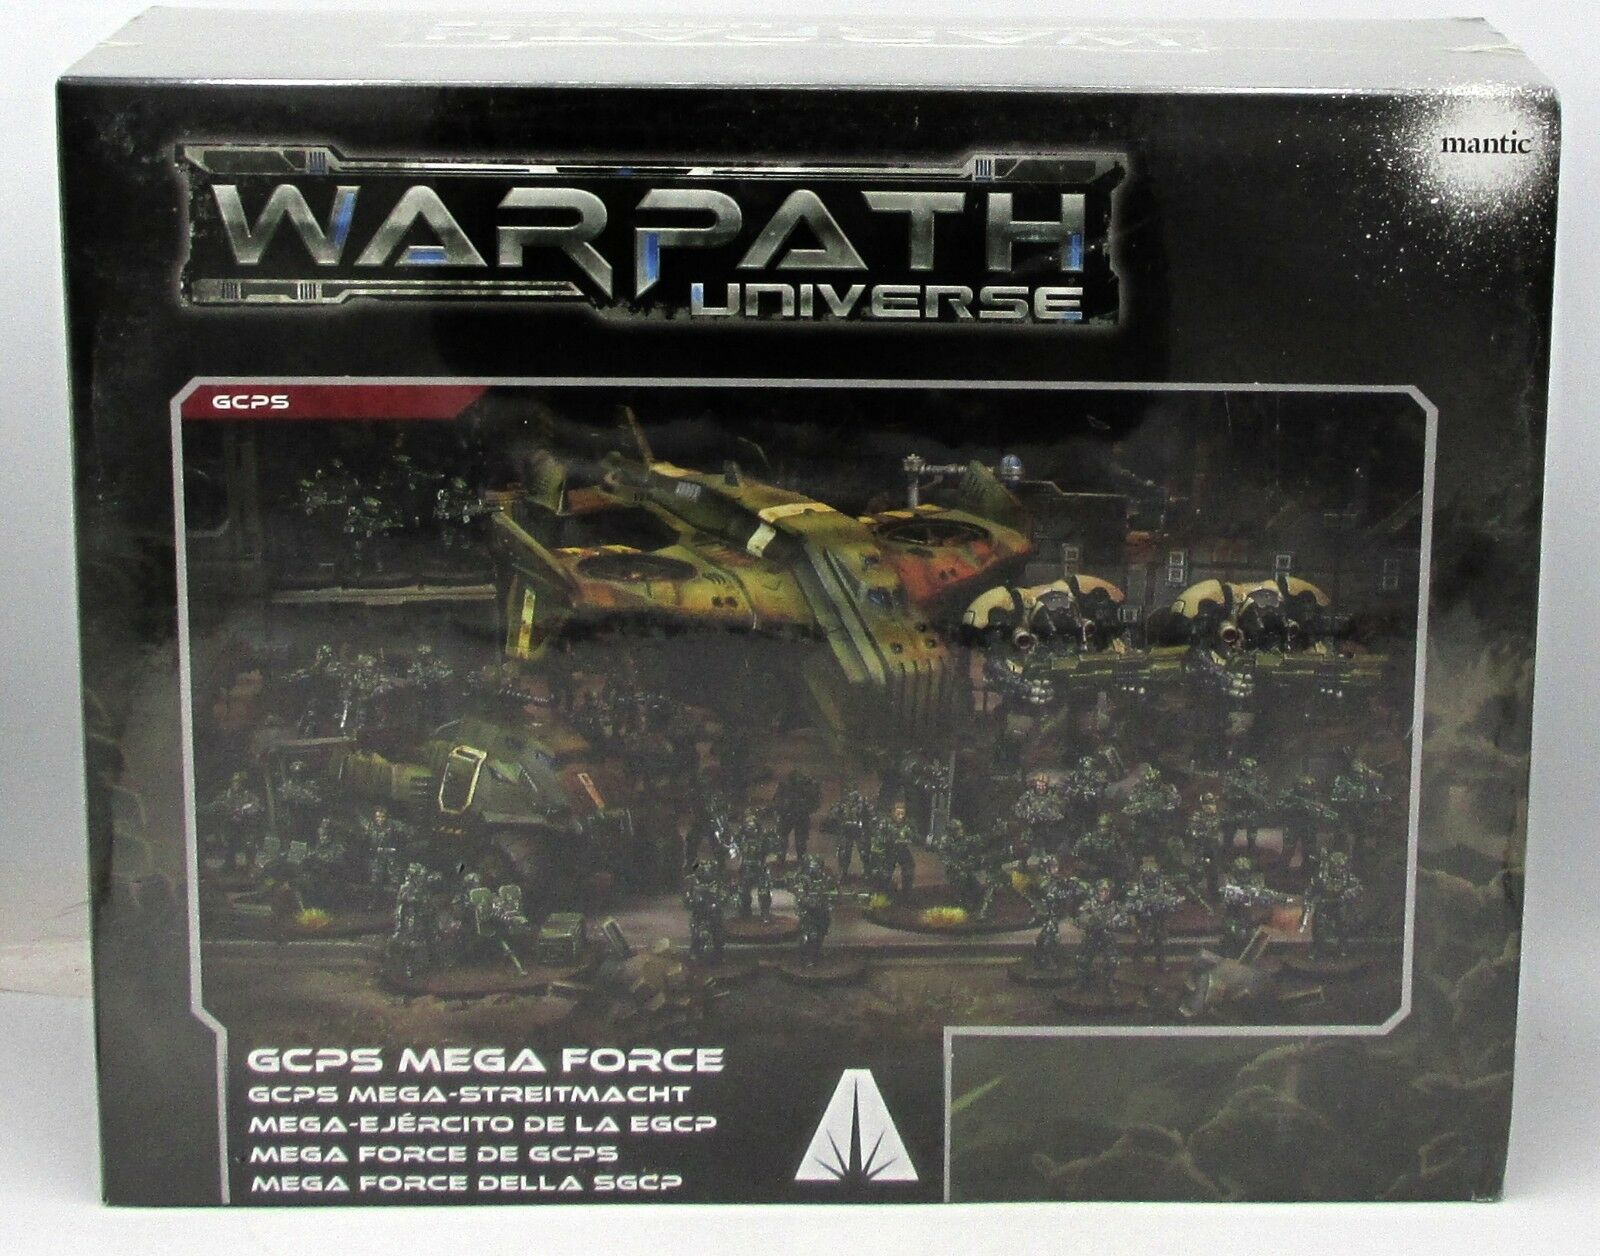 Warpath MGWPG103 GCPS Mega Force (GCPS) Co-Prosperity Sphere Corporate Corporate Corporate Military cdb37d